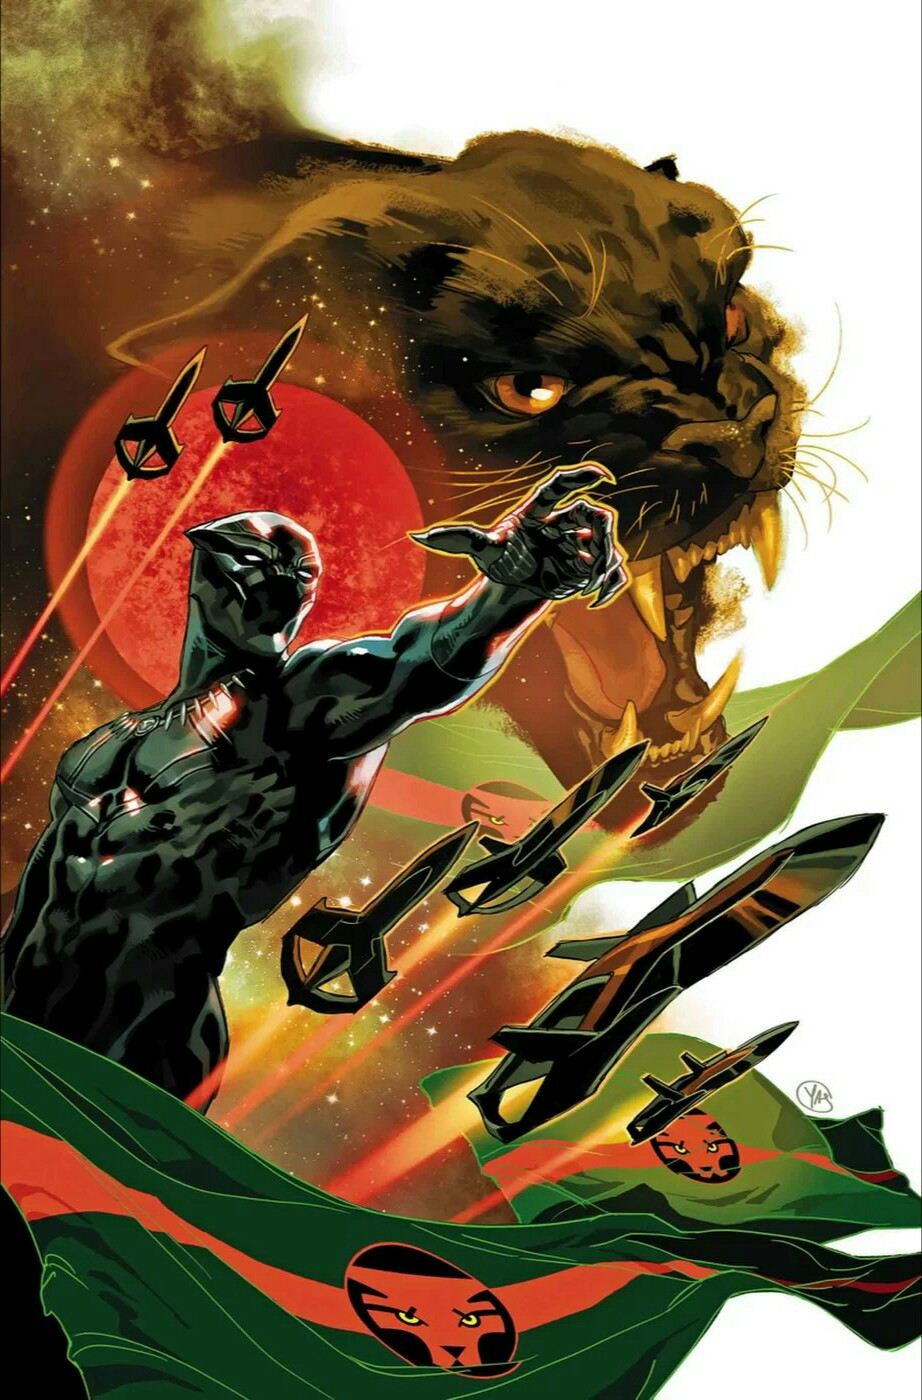 Black Panther #1 finally brings the spirit of the movie characters to the comics